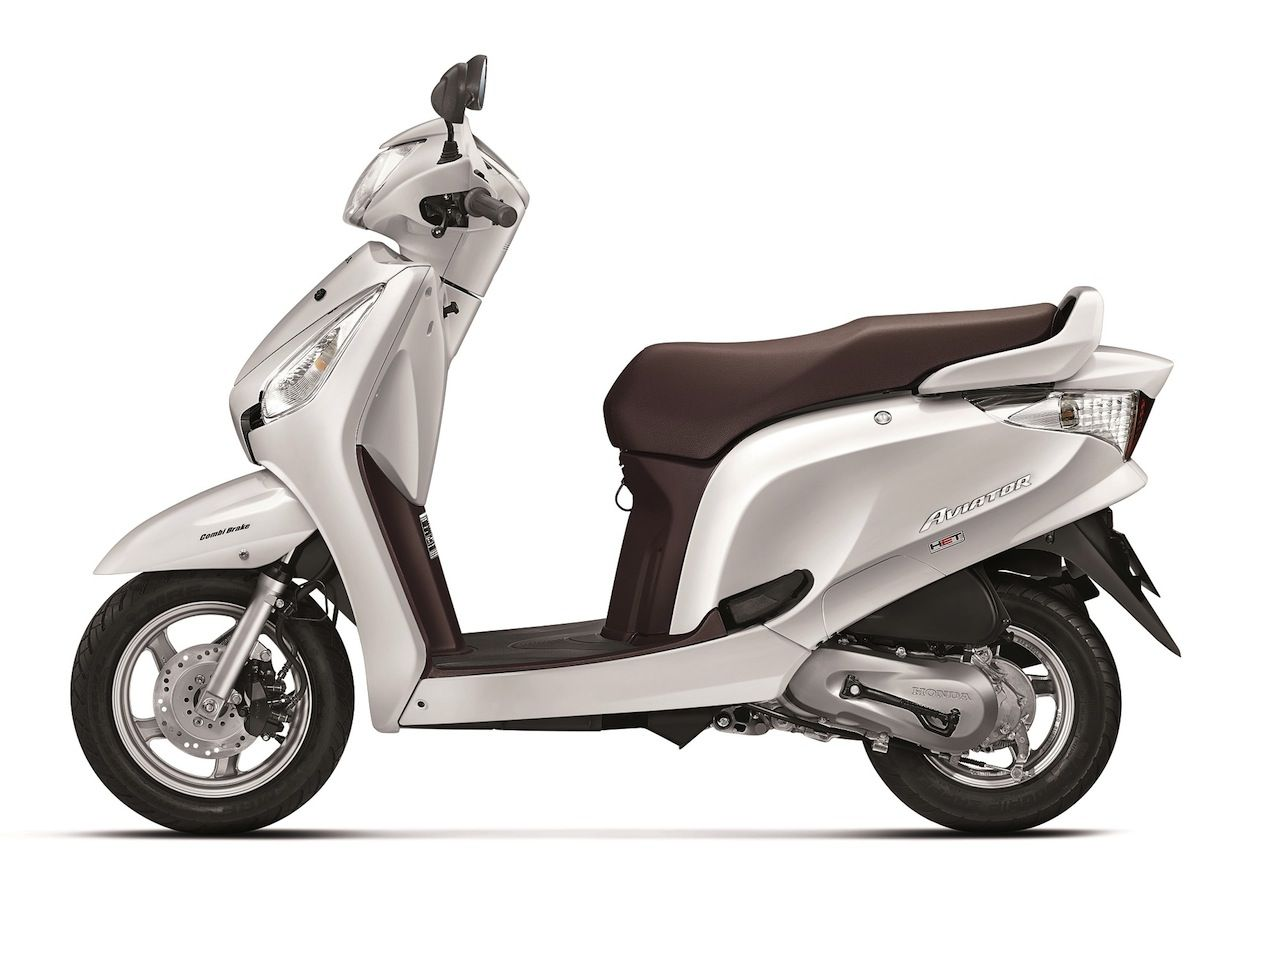 2015 Honda Aviator And Activa I Facelifts Launched IAB Report